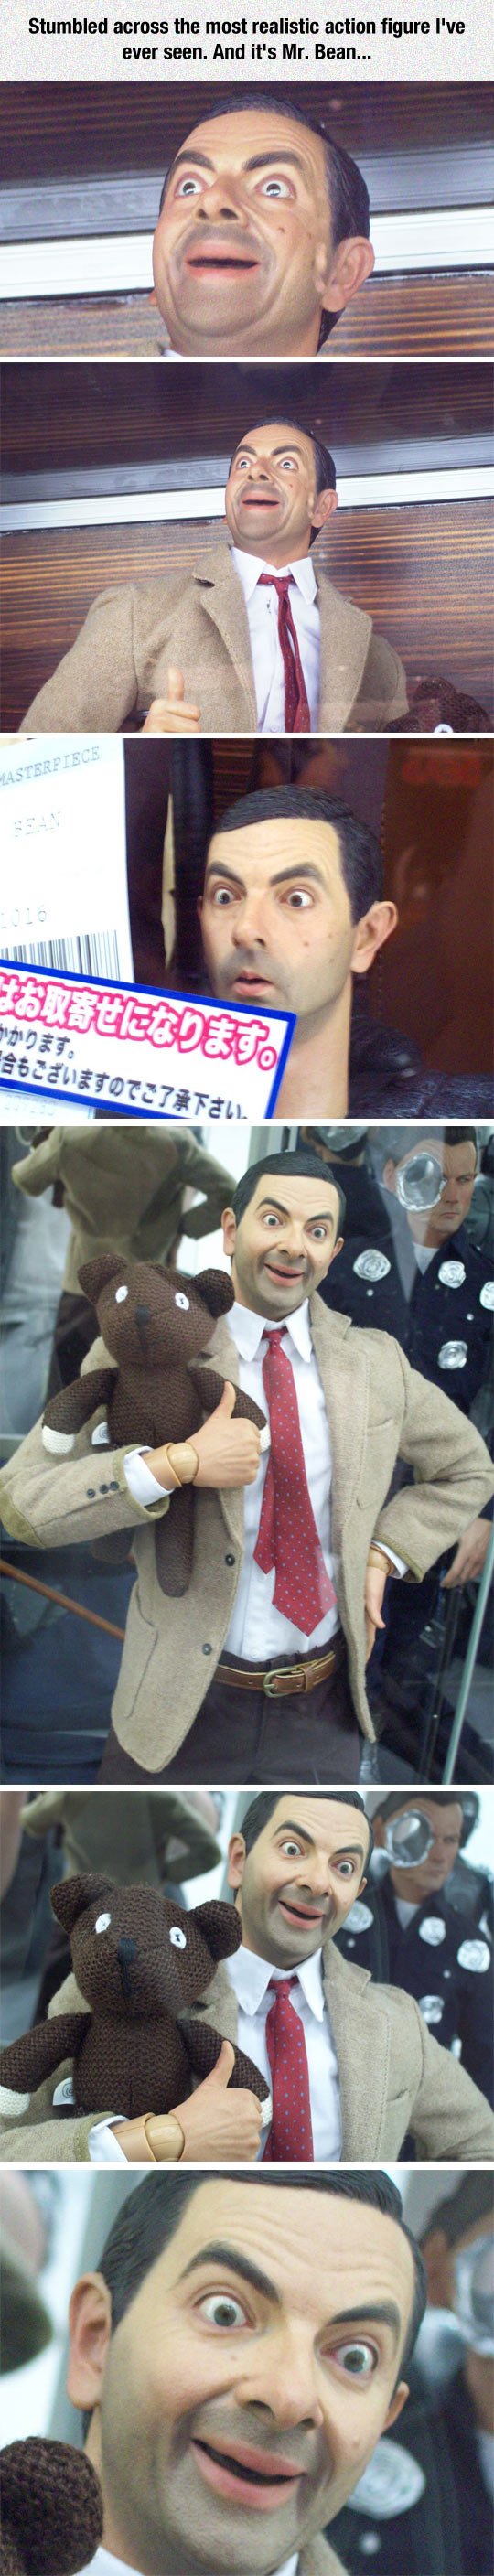 funny-Mr-Bean-realistic-action-figure